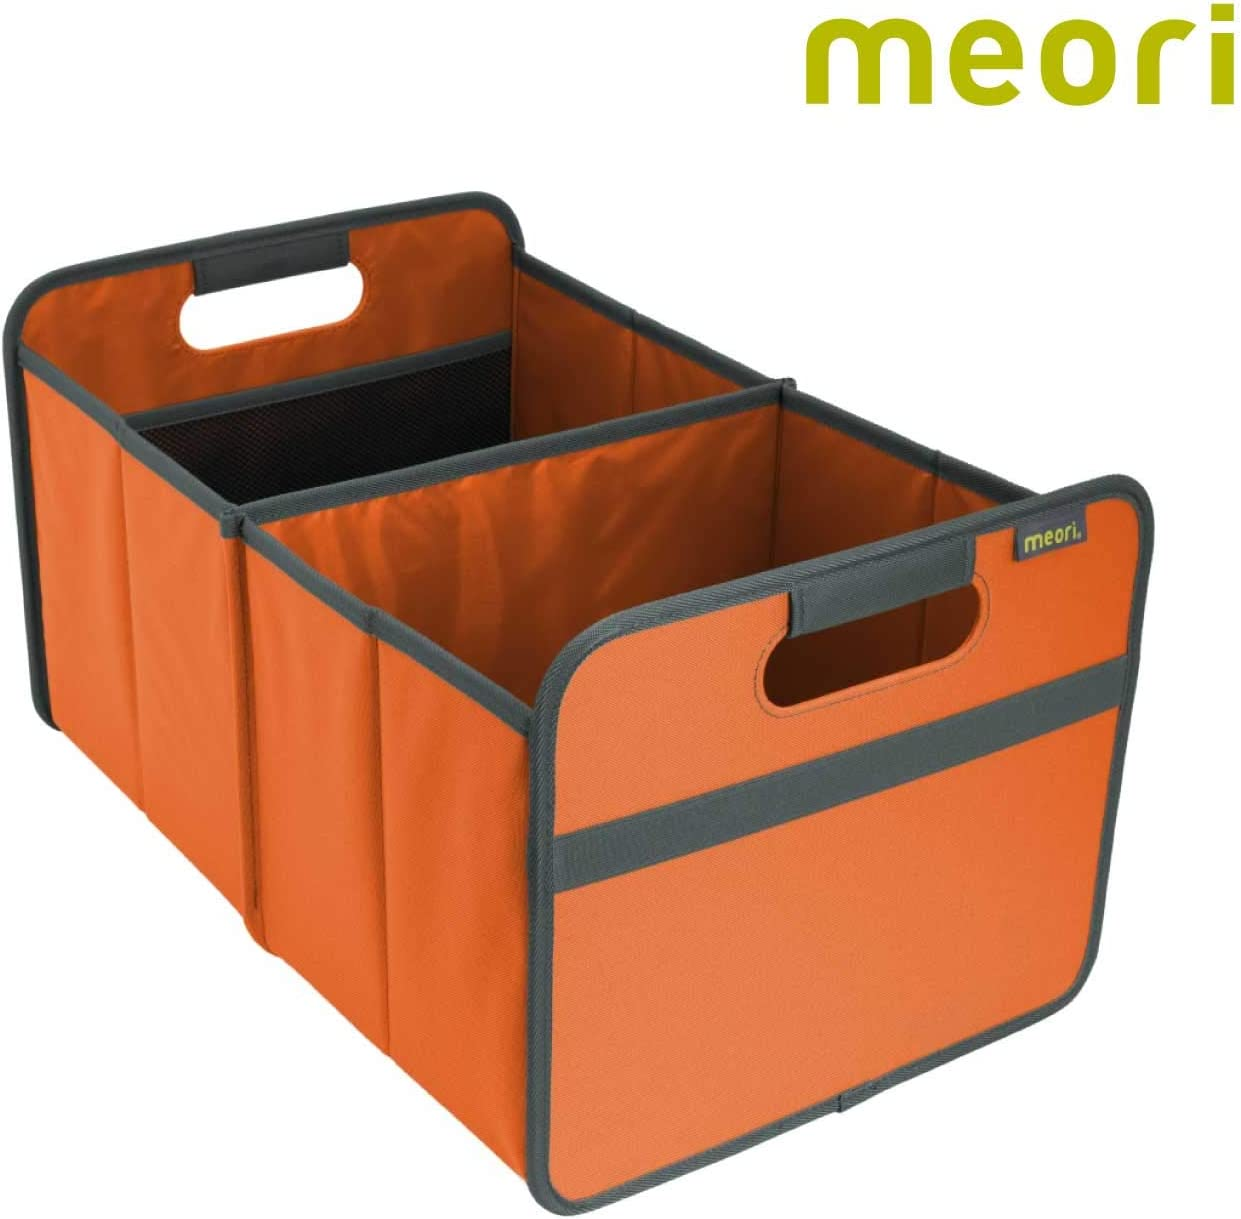 meori Tangerine Orange Foldable Box Classic Large Collapsible Organize Storage Carry Moving Collection Laundry Toys Records Books, 1-Pack